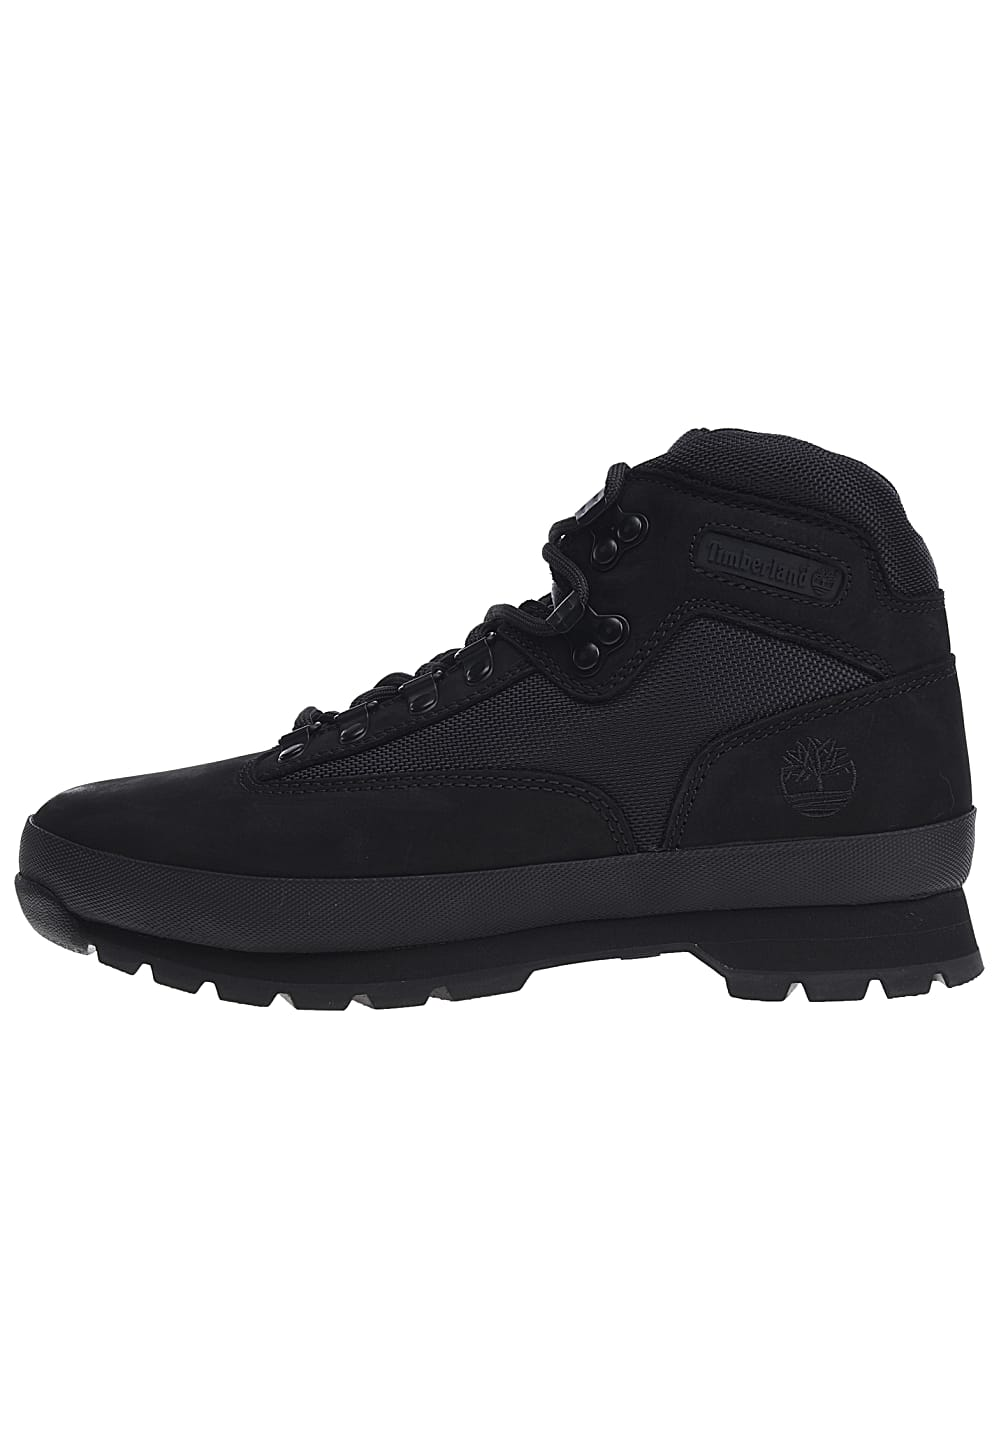 82931efceb5 TIMBERLAND Euro Hiker - Boots for Men - Black